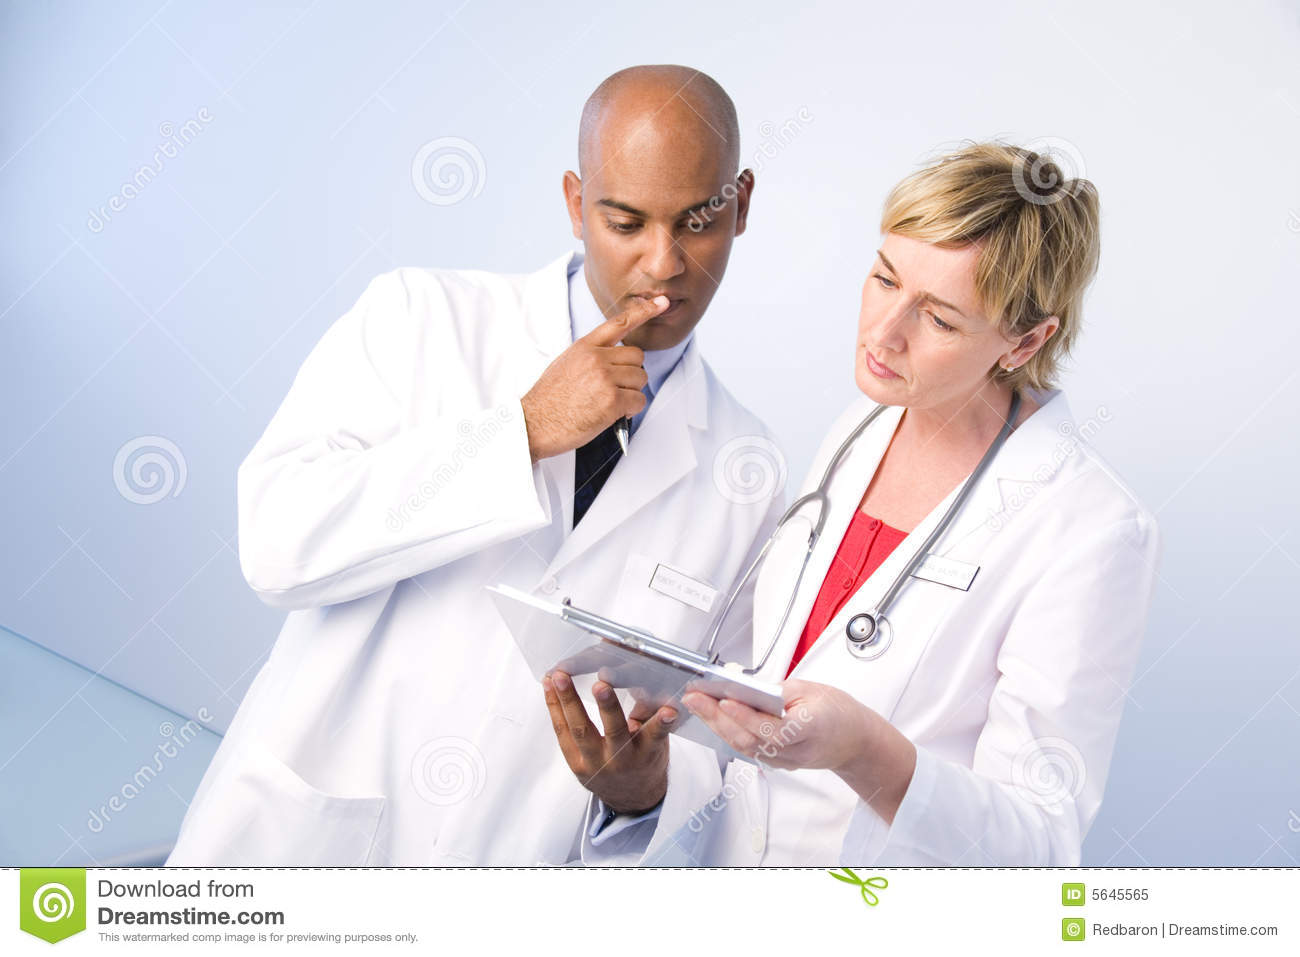 Man and woman physicians